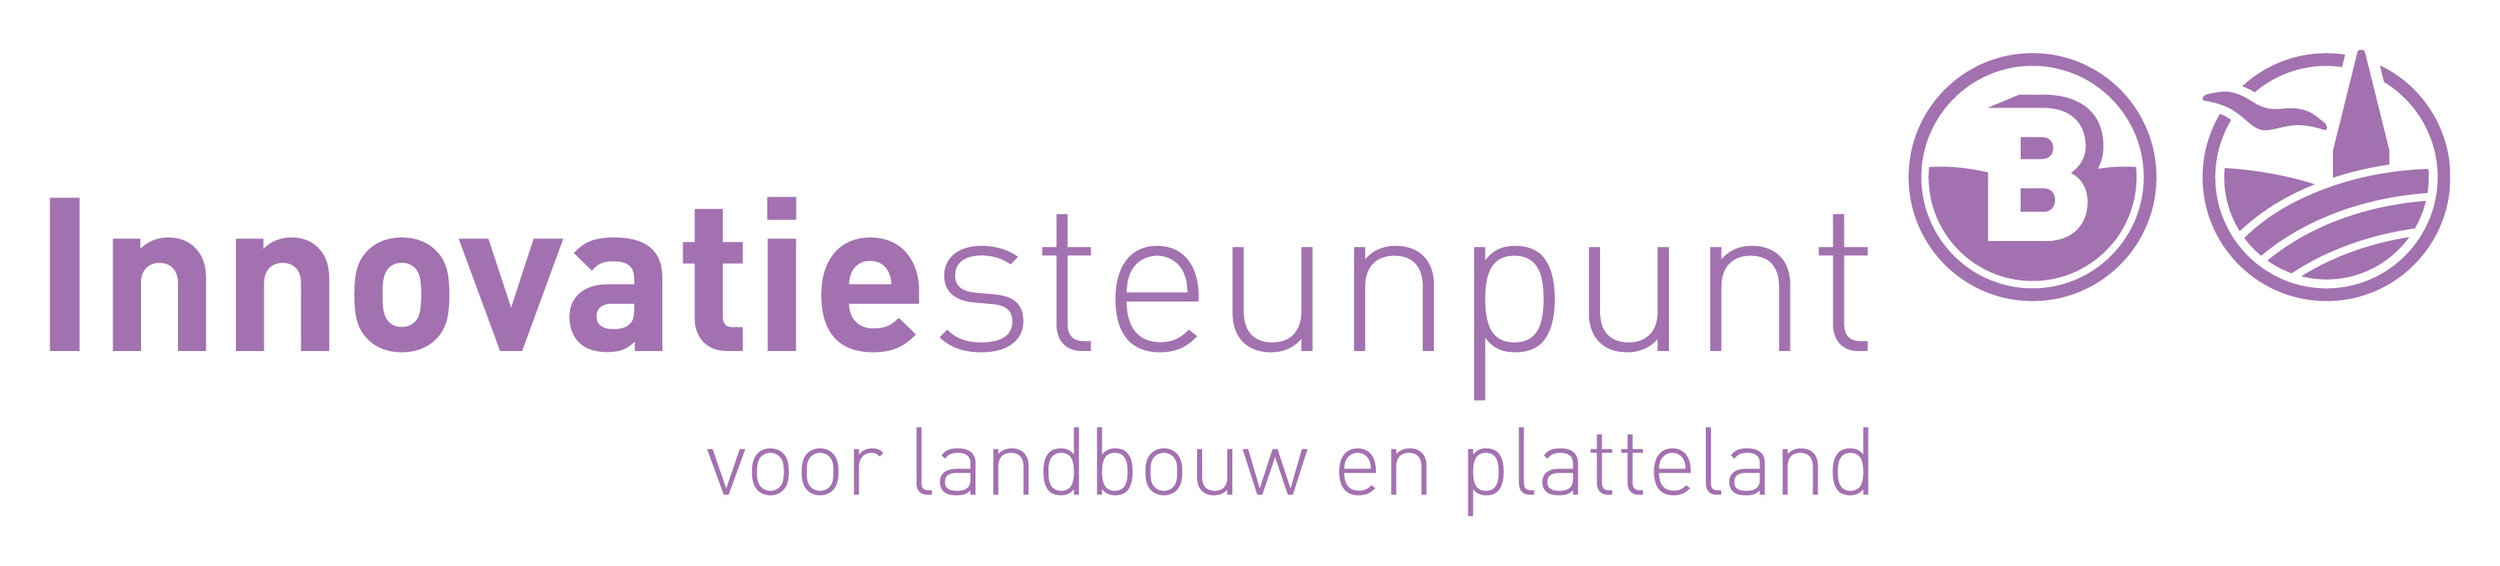 INNOVATIESTEUNPUNT vzw - INNOVATIESTEUNPUNT vzw is thé specialized service in Flanders for guiding agricultural and horticultural entrepreneurs, groups of rural residents and local governments in taking a new direction for their enterprise or their community. Our activities focus on three domains: technical development, business development and rural development. In that, we focus on a future-oriented, durable agriculture and horticulture and on a vibrant rural area.